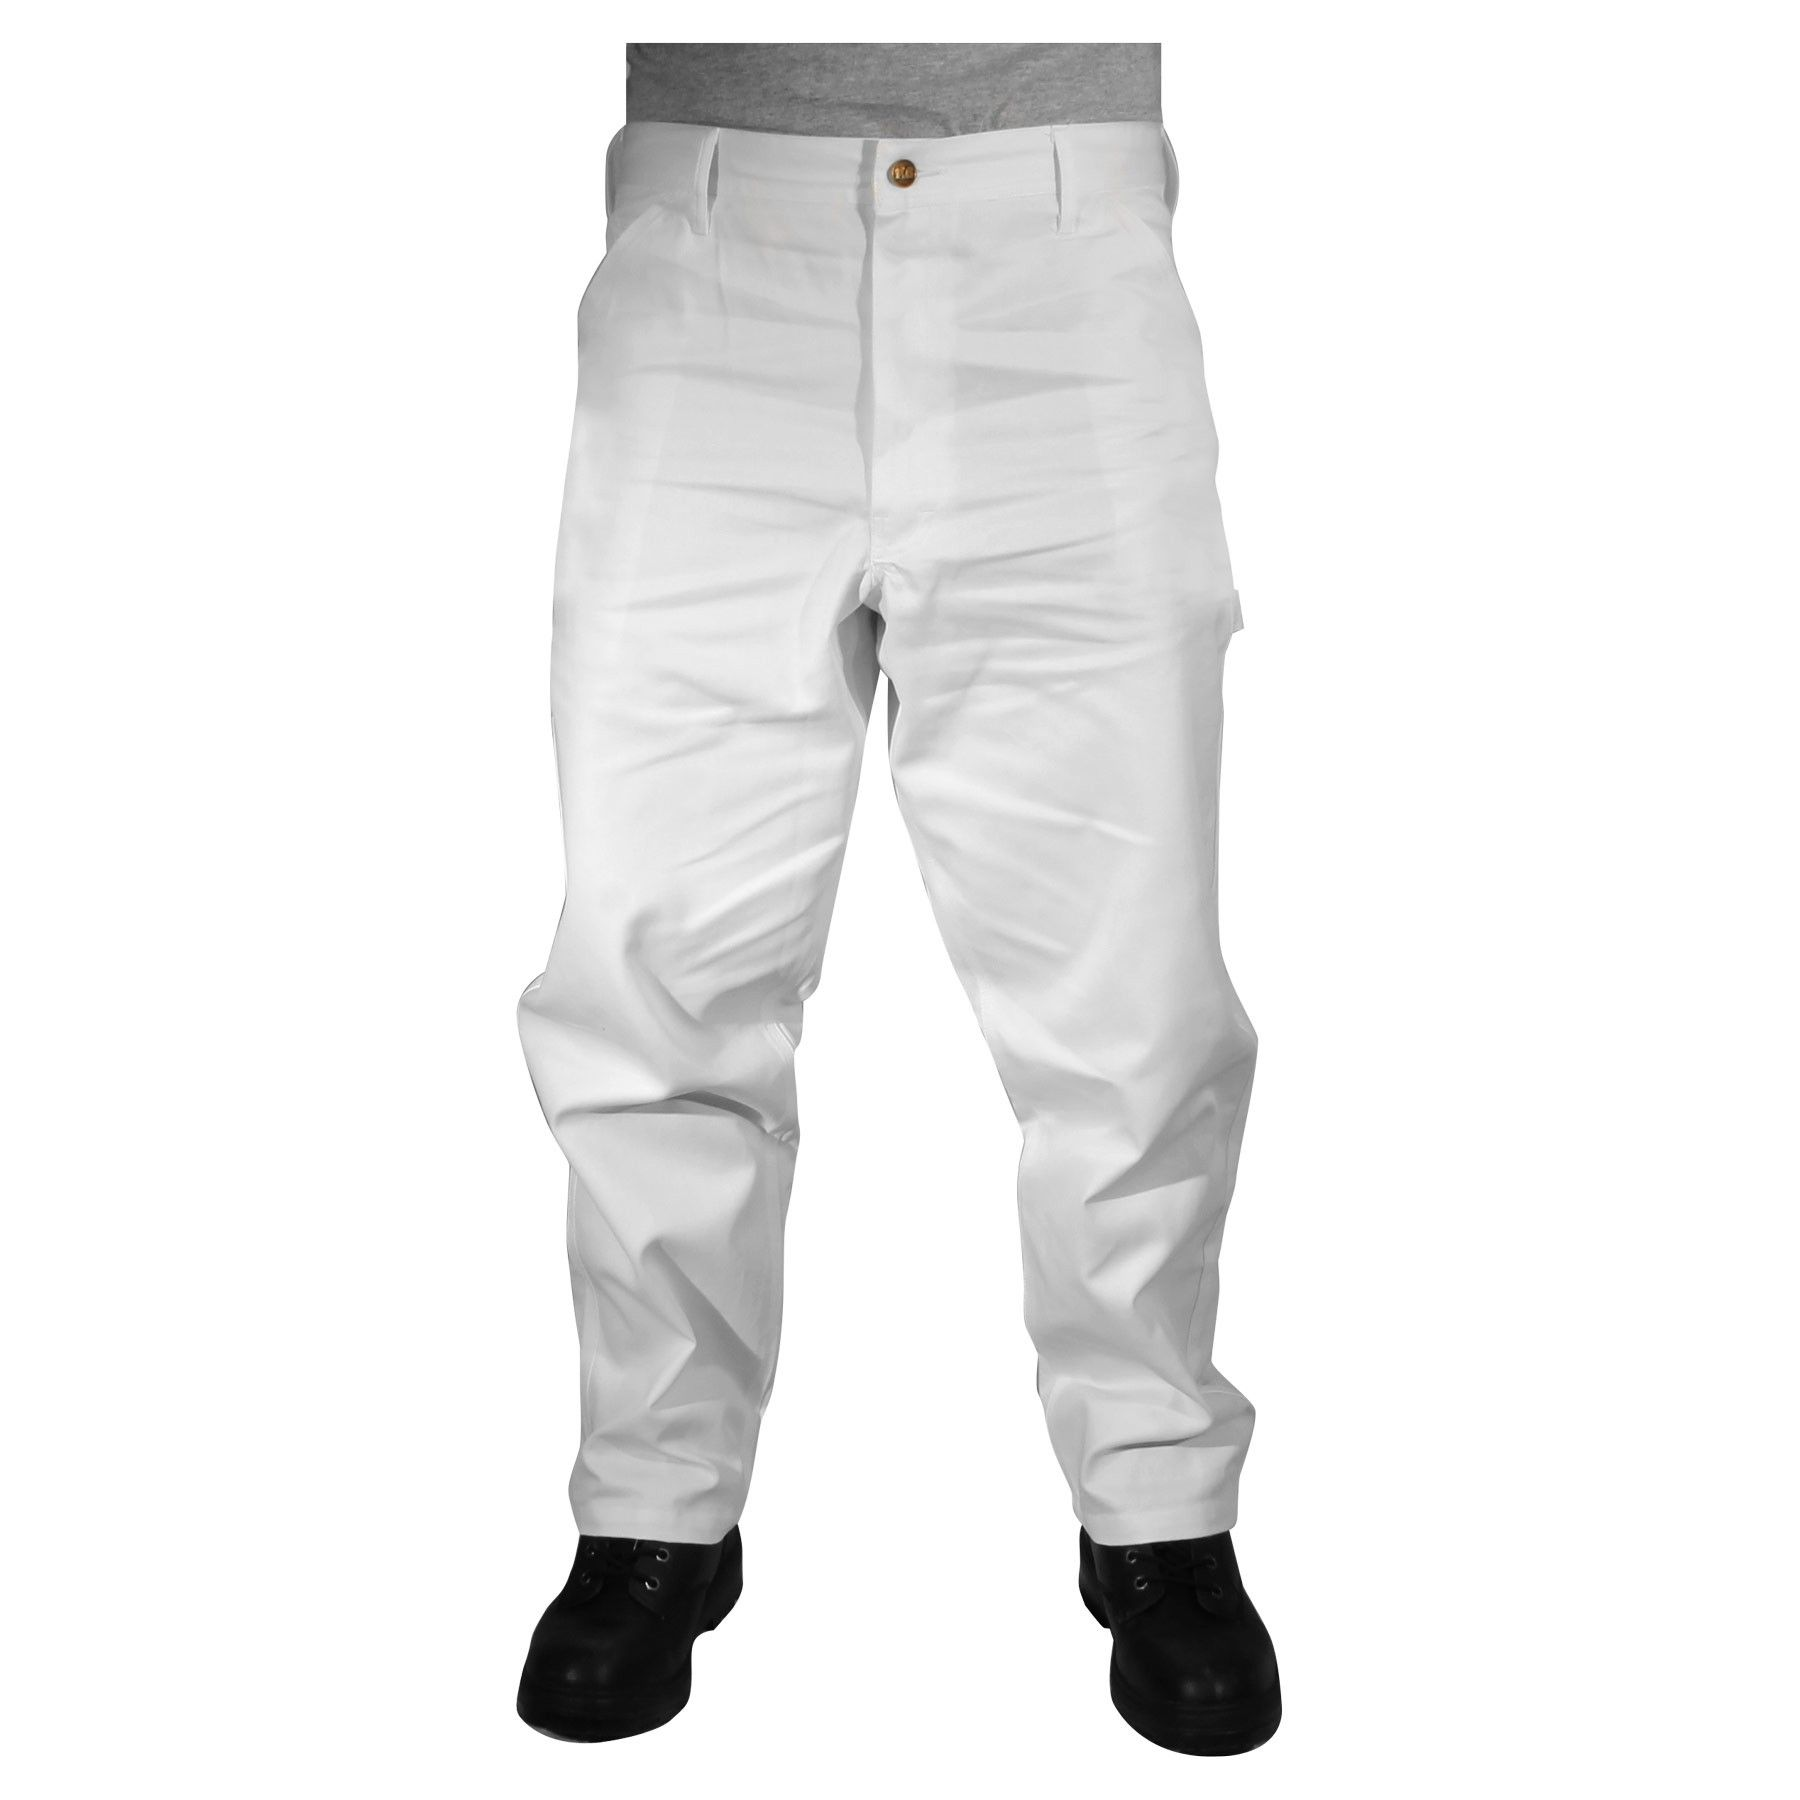 Dickies Painters Pants MOST SIZE AVAILABLE-2 PAIRS